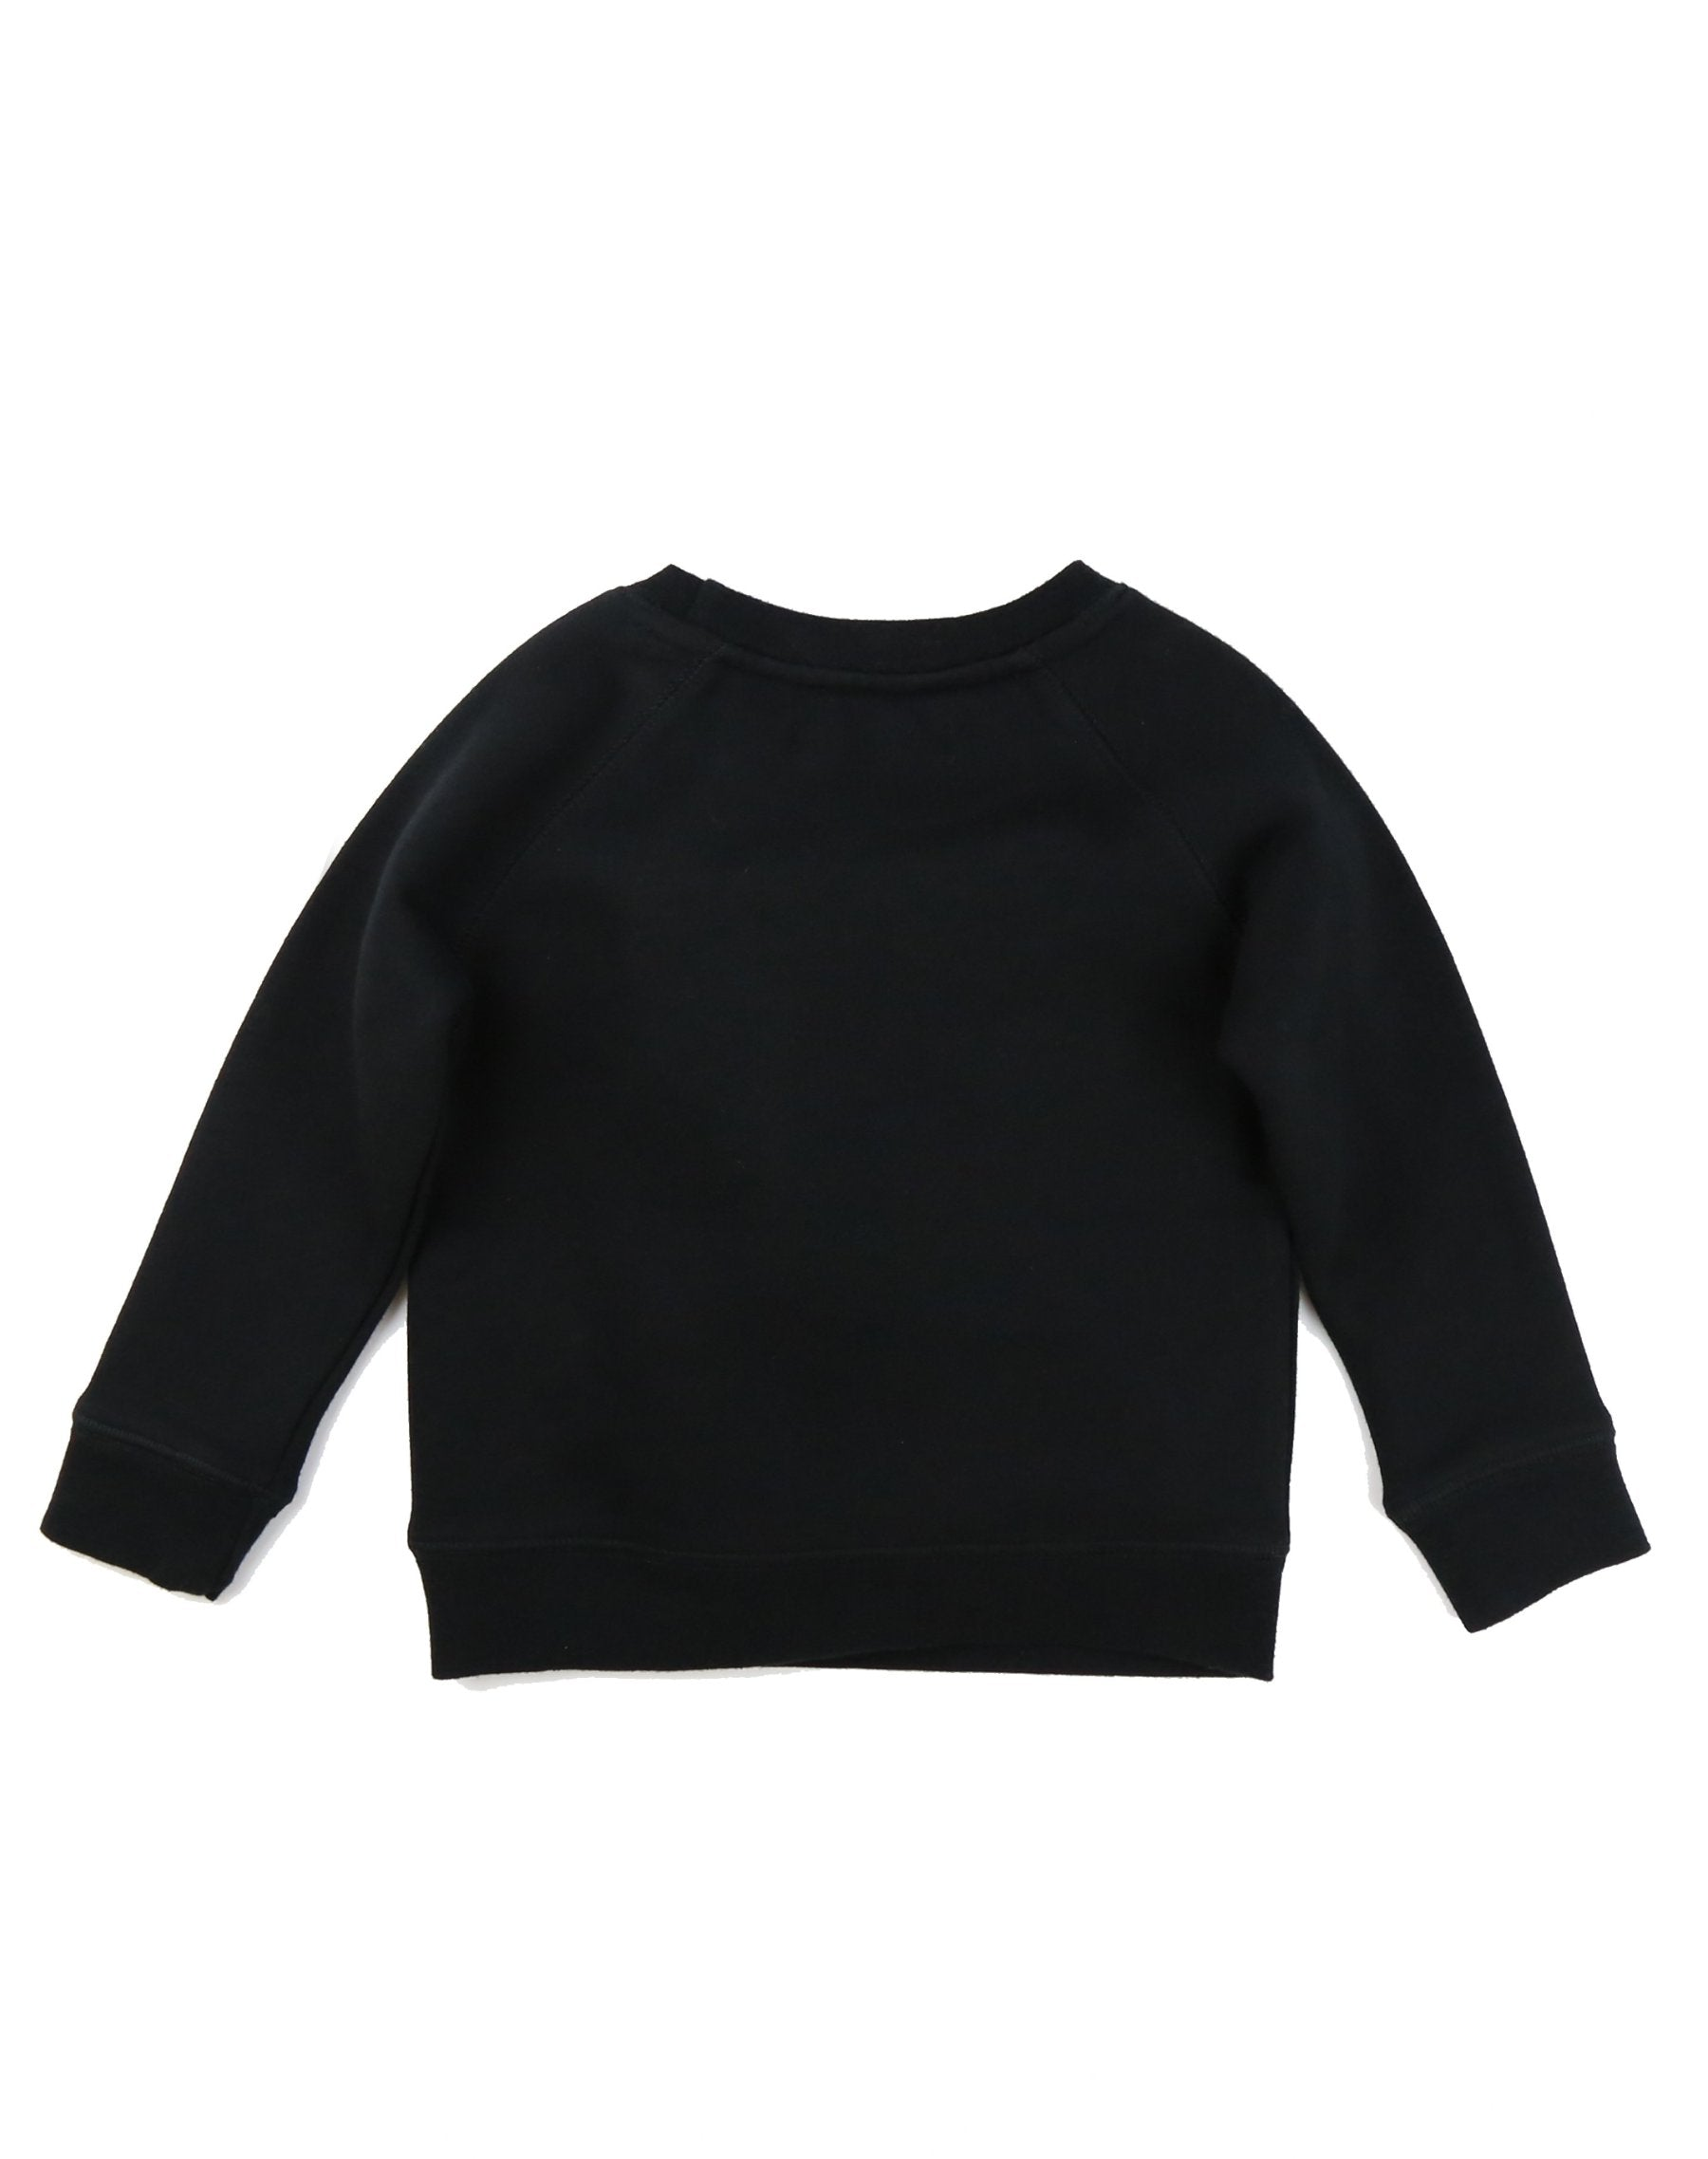 Photo of the back of the Redhead Little Babes classic crew neck sweatshirt in black by Brunette the Label.